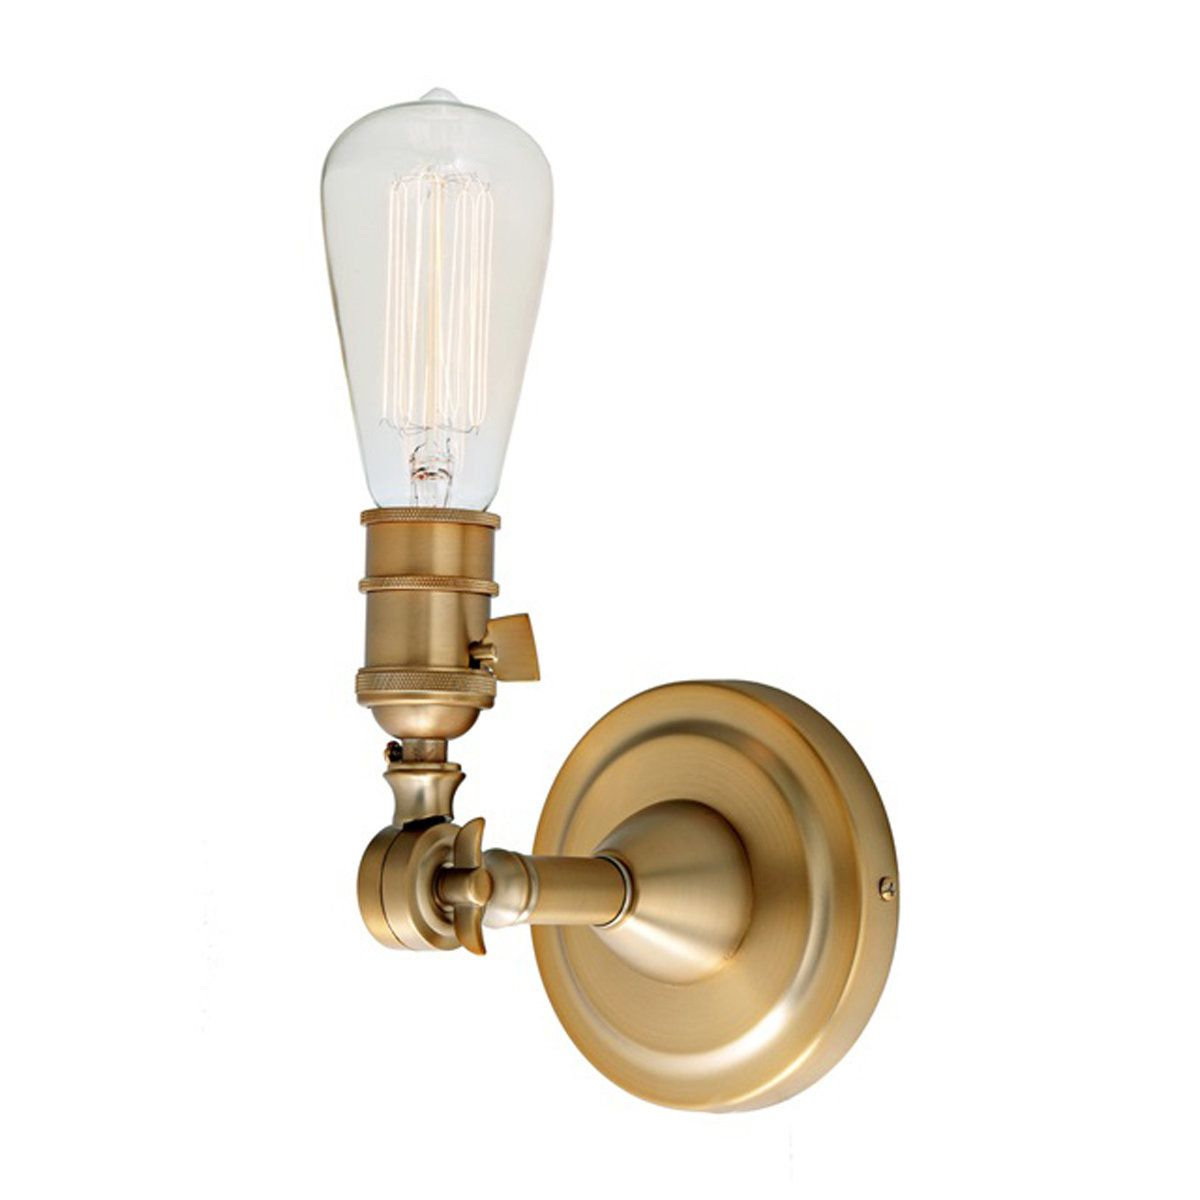 Single Swivel Wall Sconce In 2021 Sconces Wall Sconces Wall Sconce Lighting